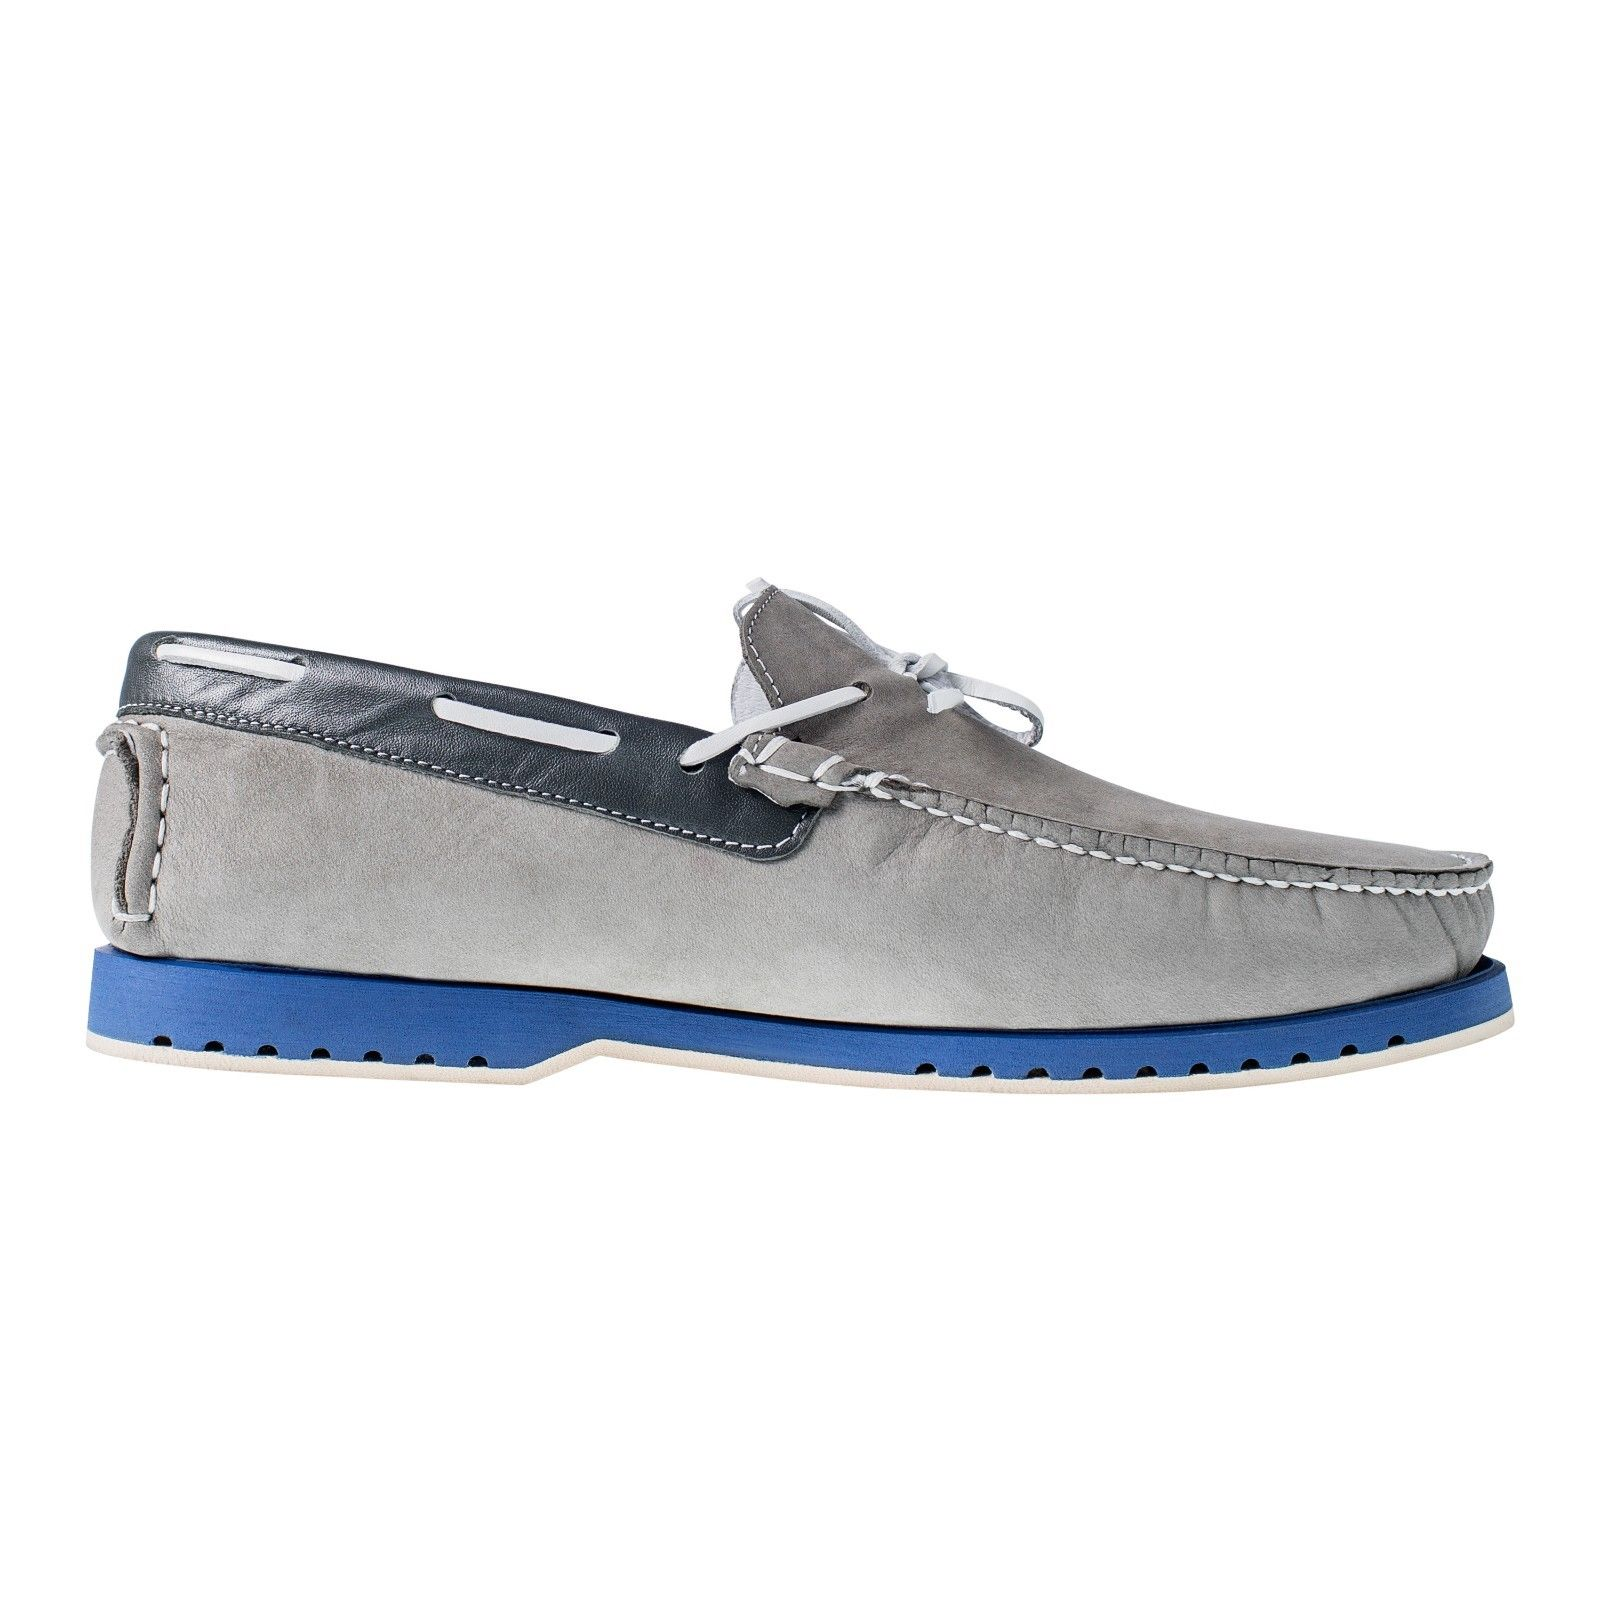 MIDA Loafers Casual Natural Nubuck Boat Shoes Non-Slip Sole Casual Loafers Design Comfortable-Various goods-Men's/Women's 194099